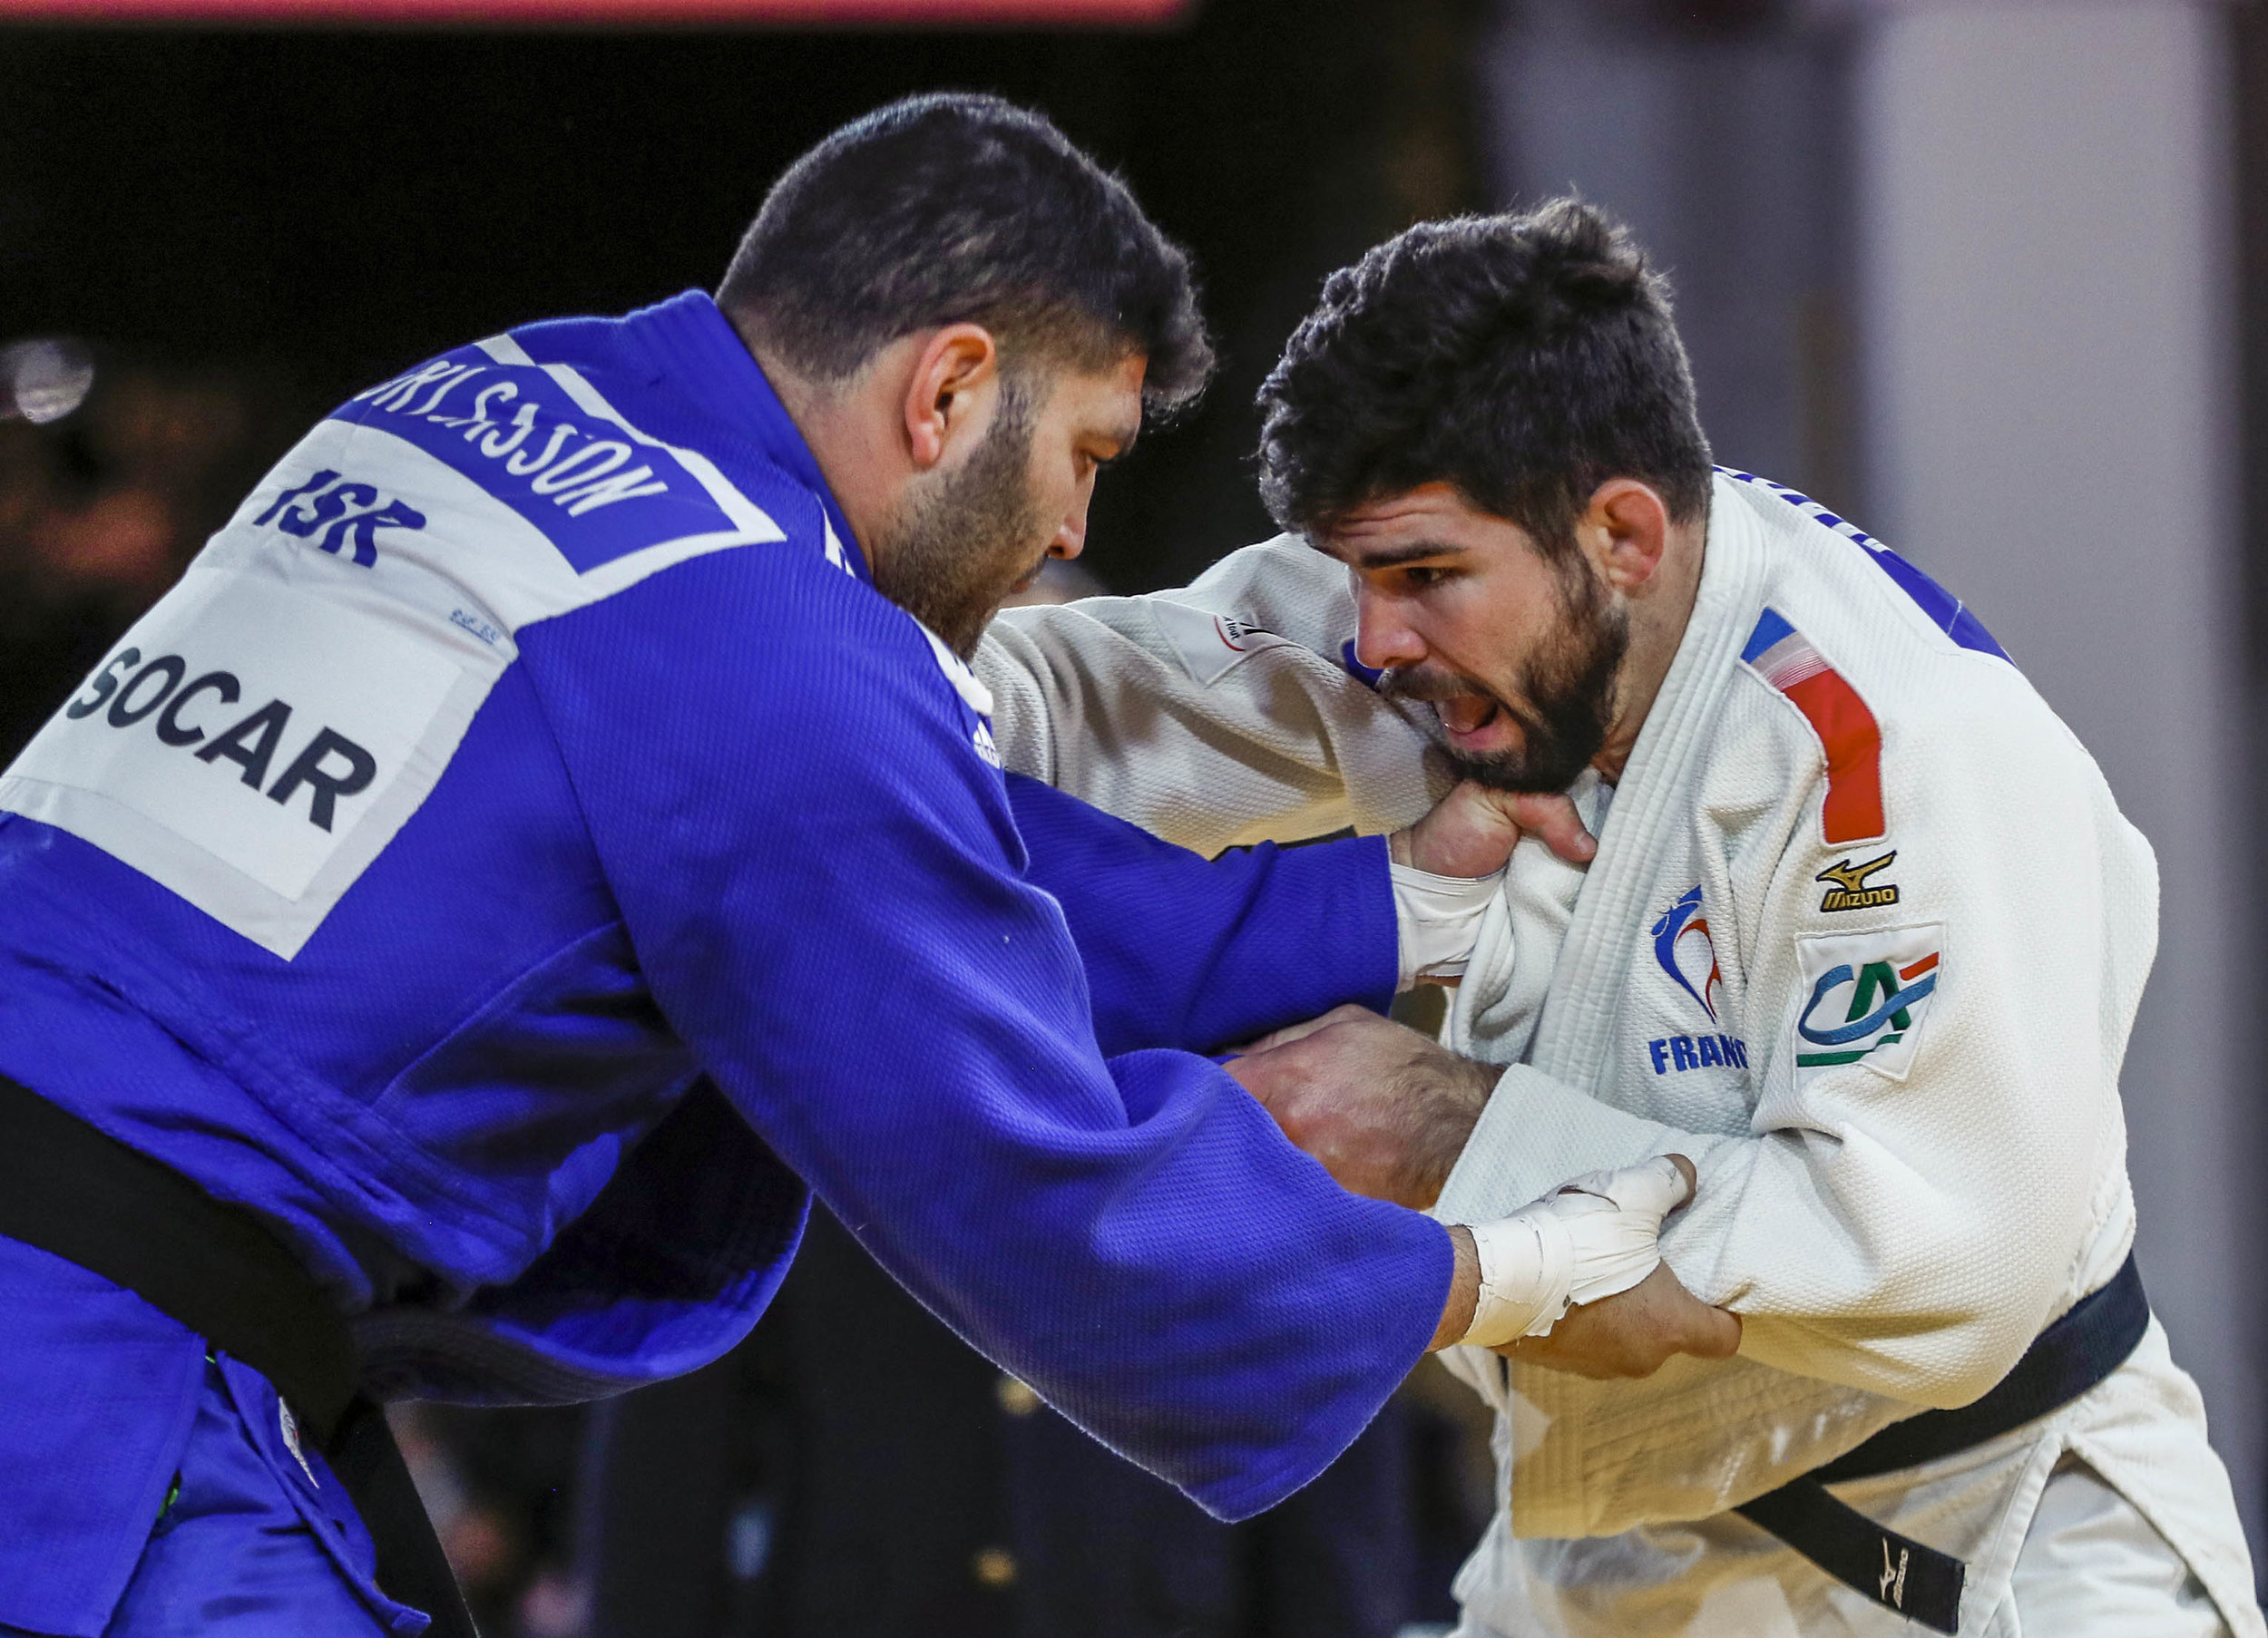 Israel's Or Sasson competing Saturday in Marrakech against France's Cyrille Maret // Gabriela Sabău, IJF